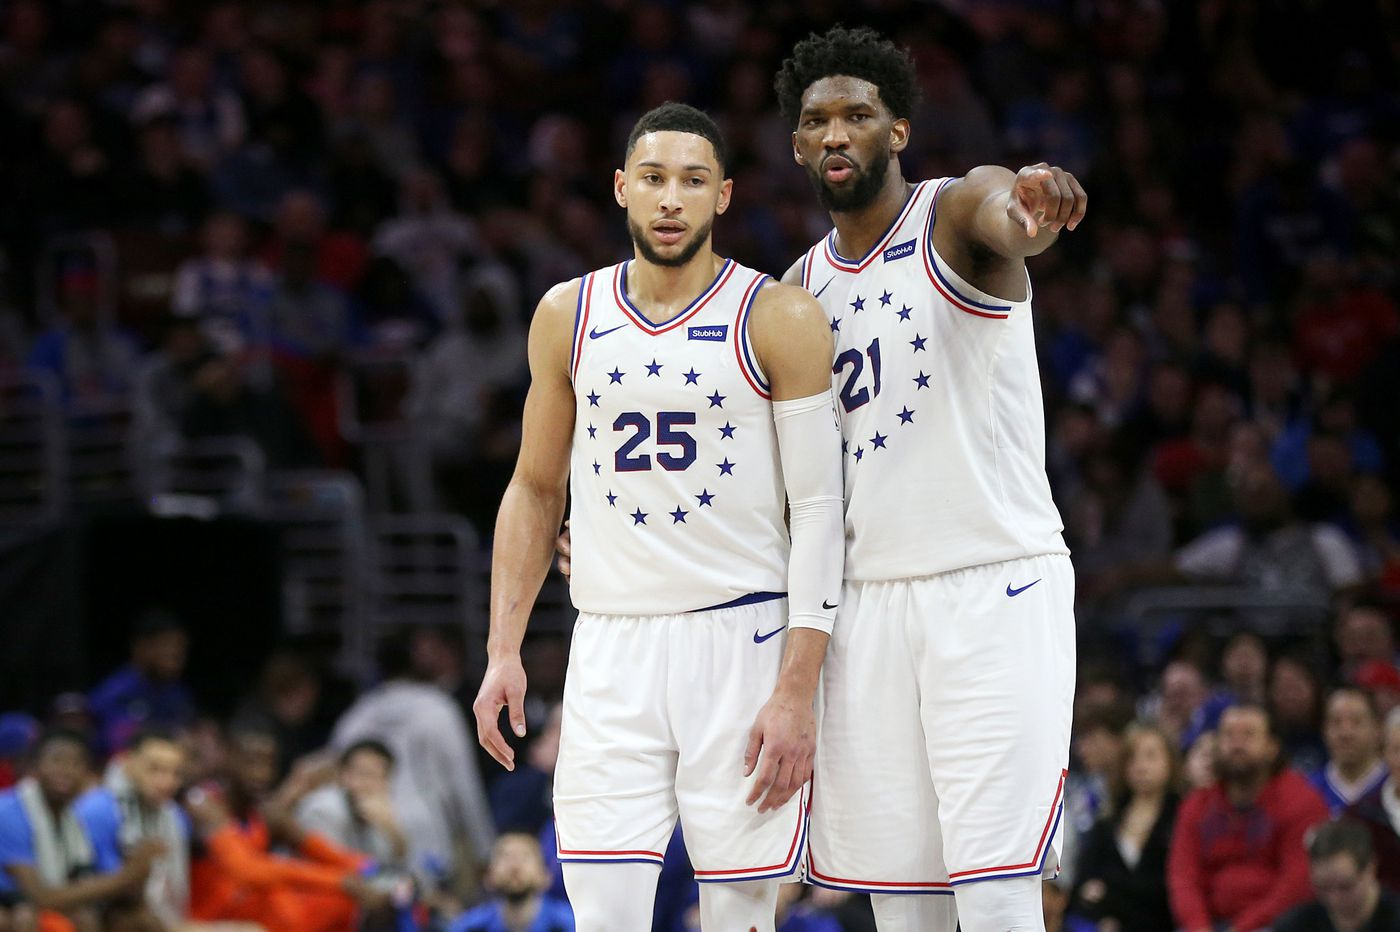 Sixers mailbag: The latest on Joel Embiid and Ben Simmons; Al Horford's trade value